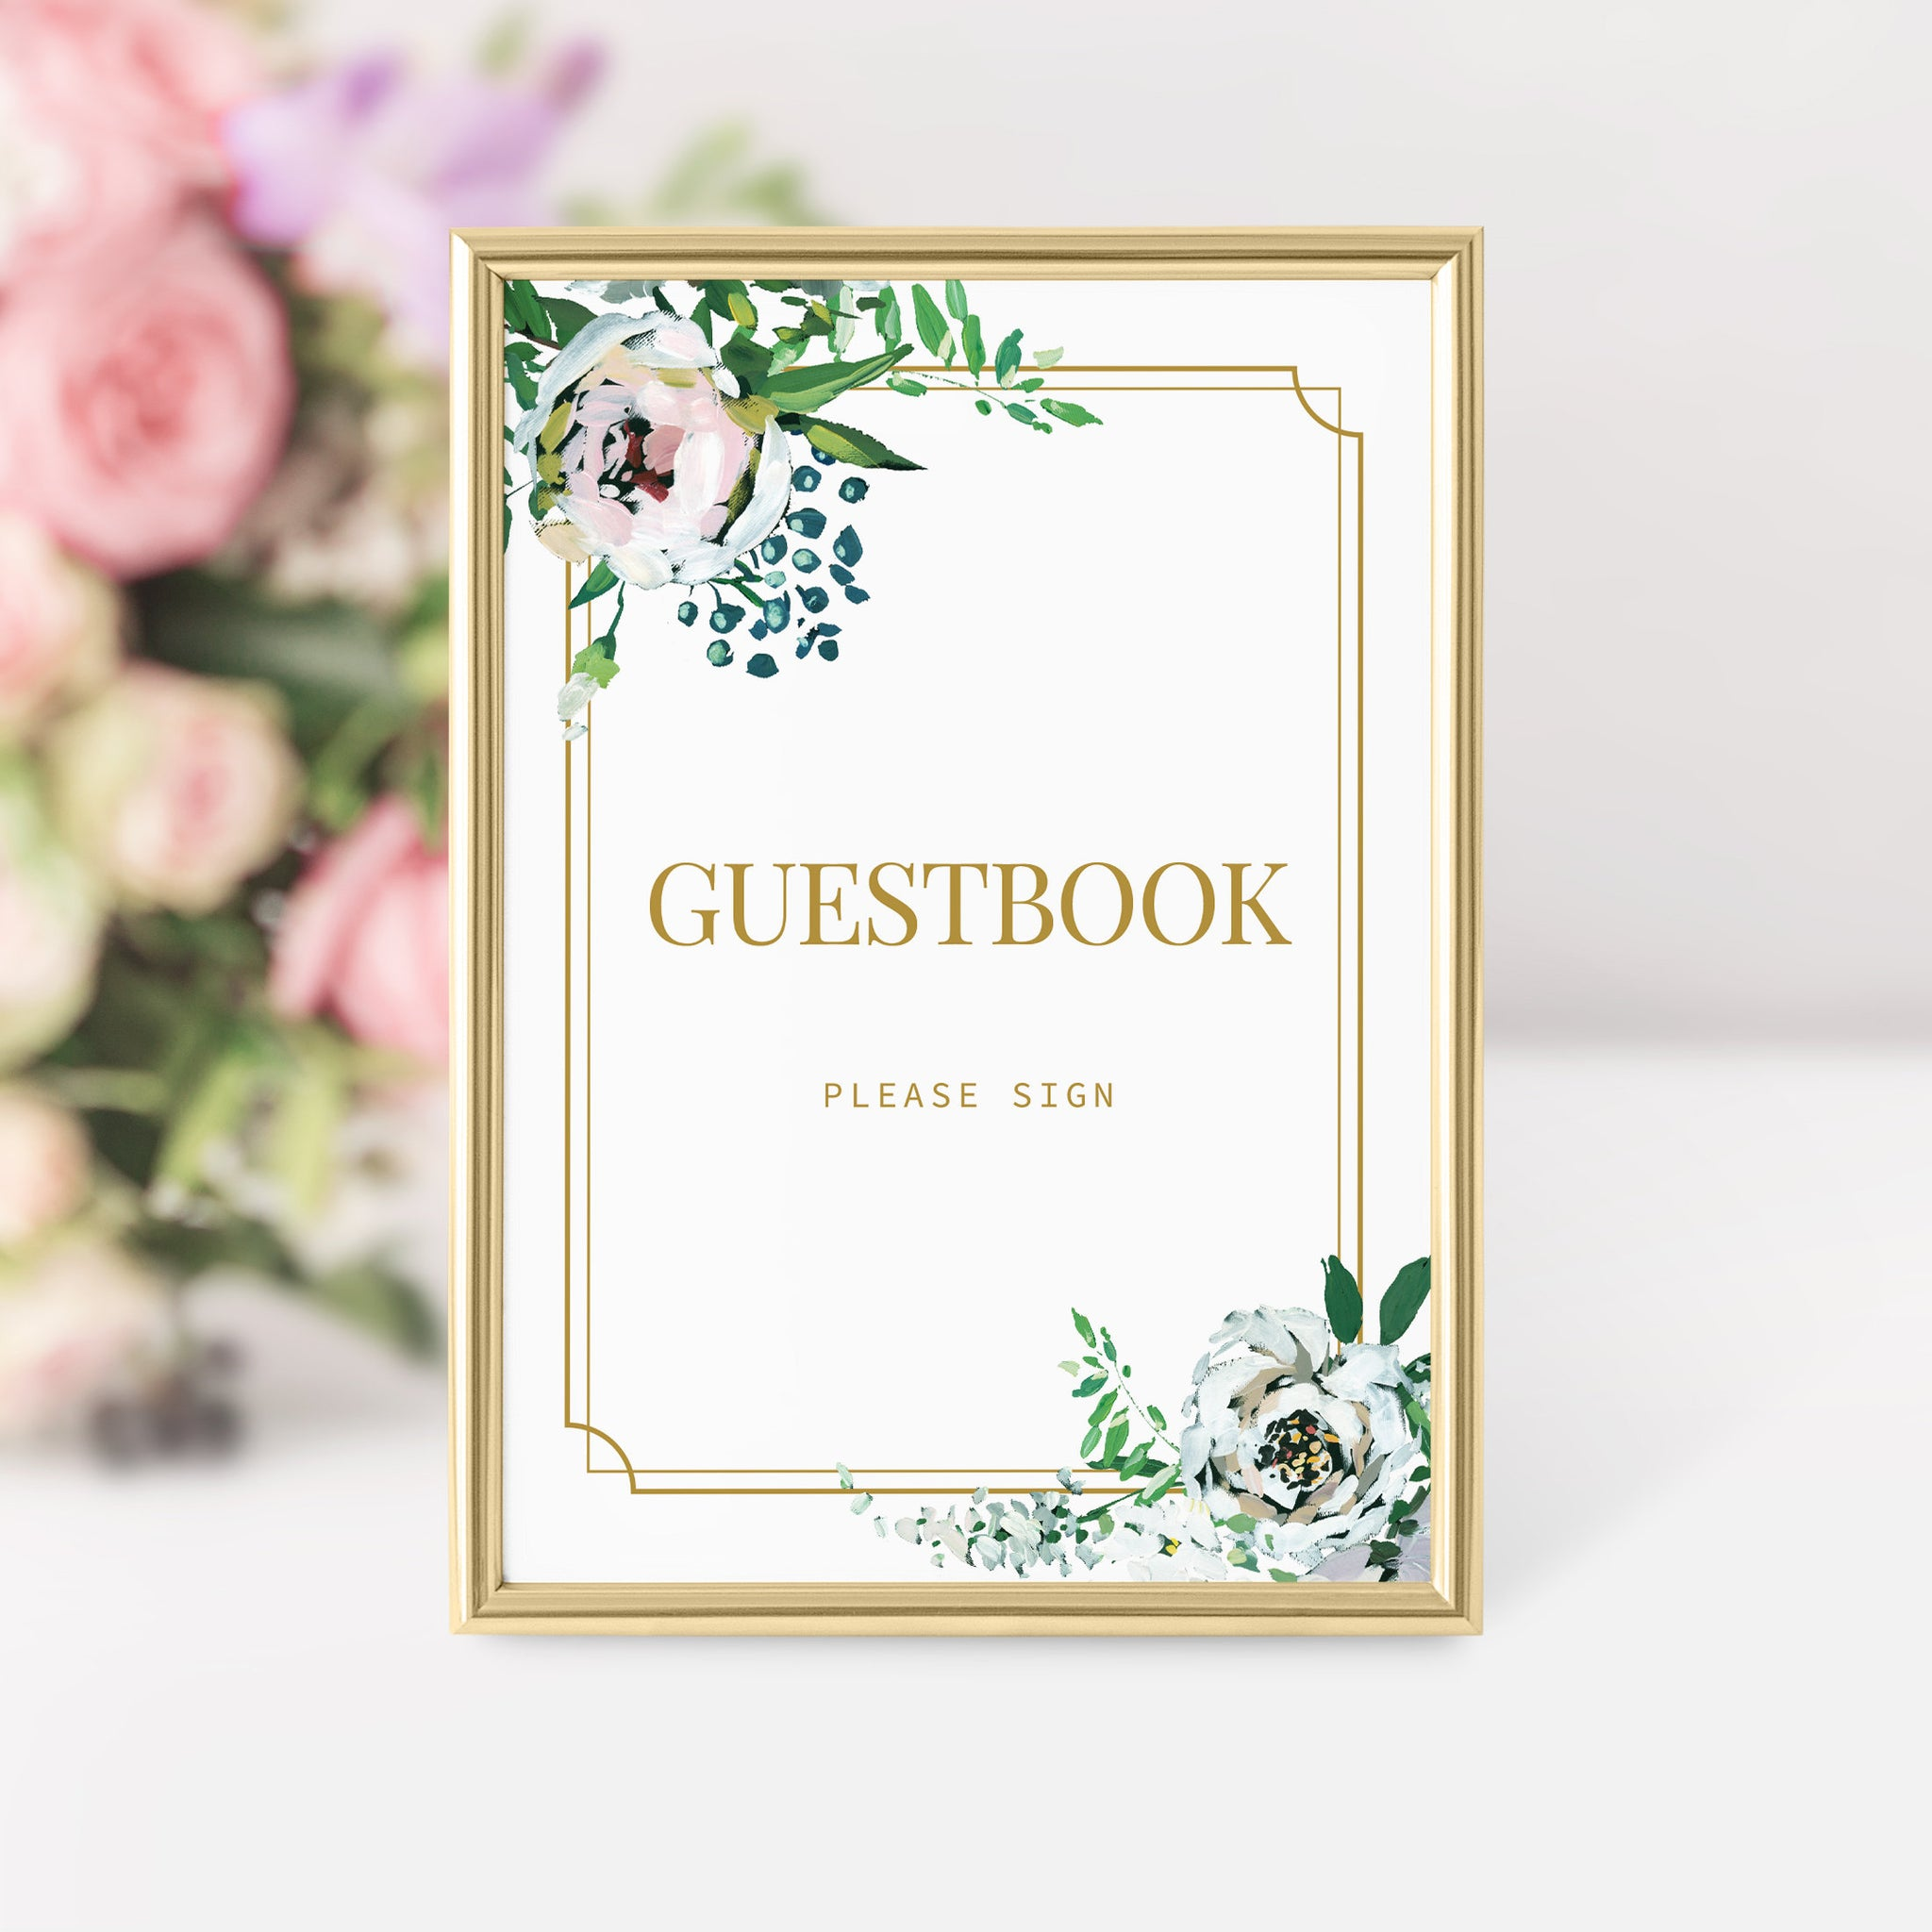 Blush Floral Greenery Guestbook Sign Printable INSTANT DOWNLOAD, Gold Bridal Shower Guestbook Sign, Wedding Decoration Supplies - BGF100